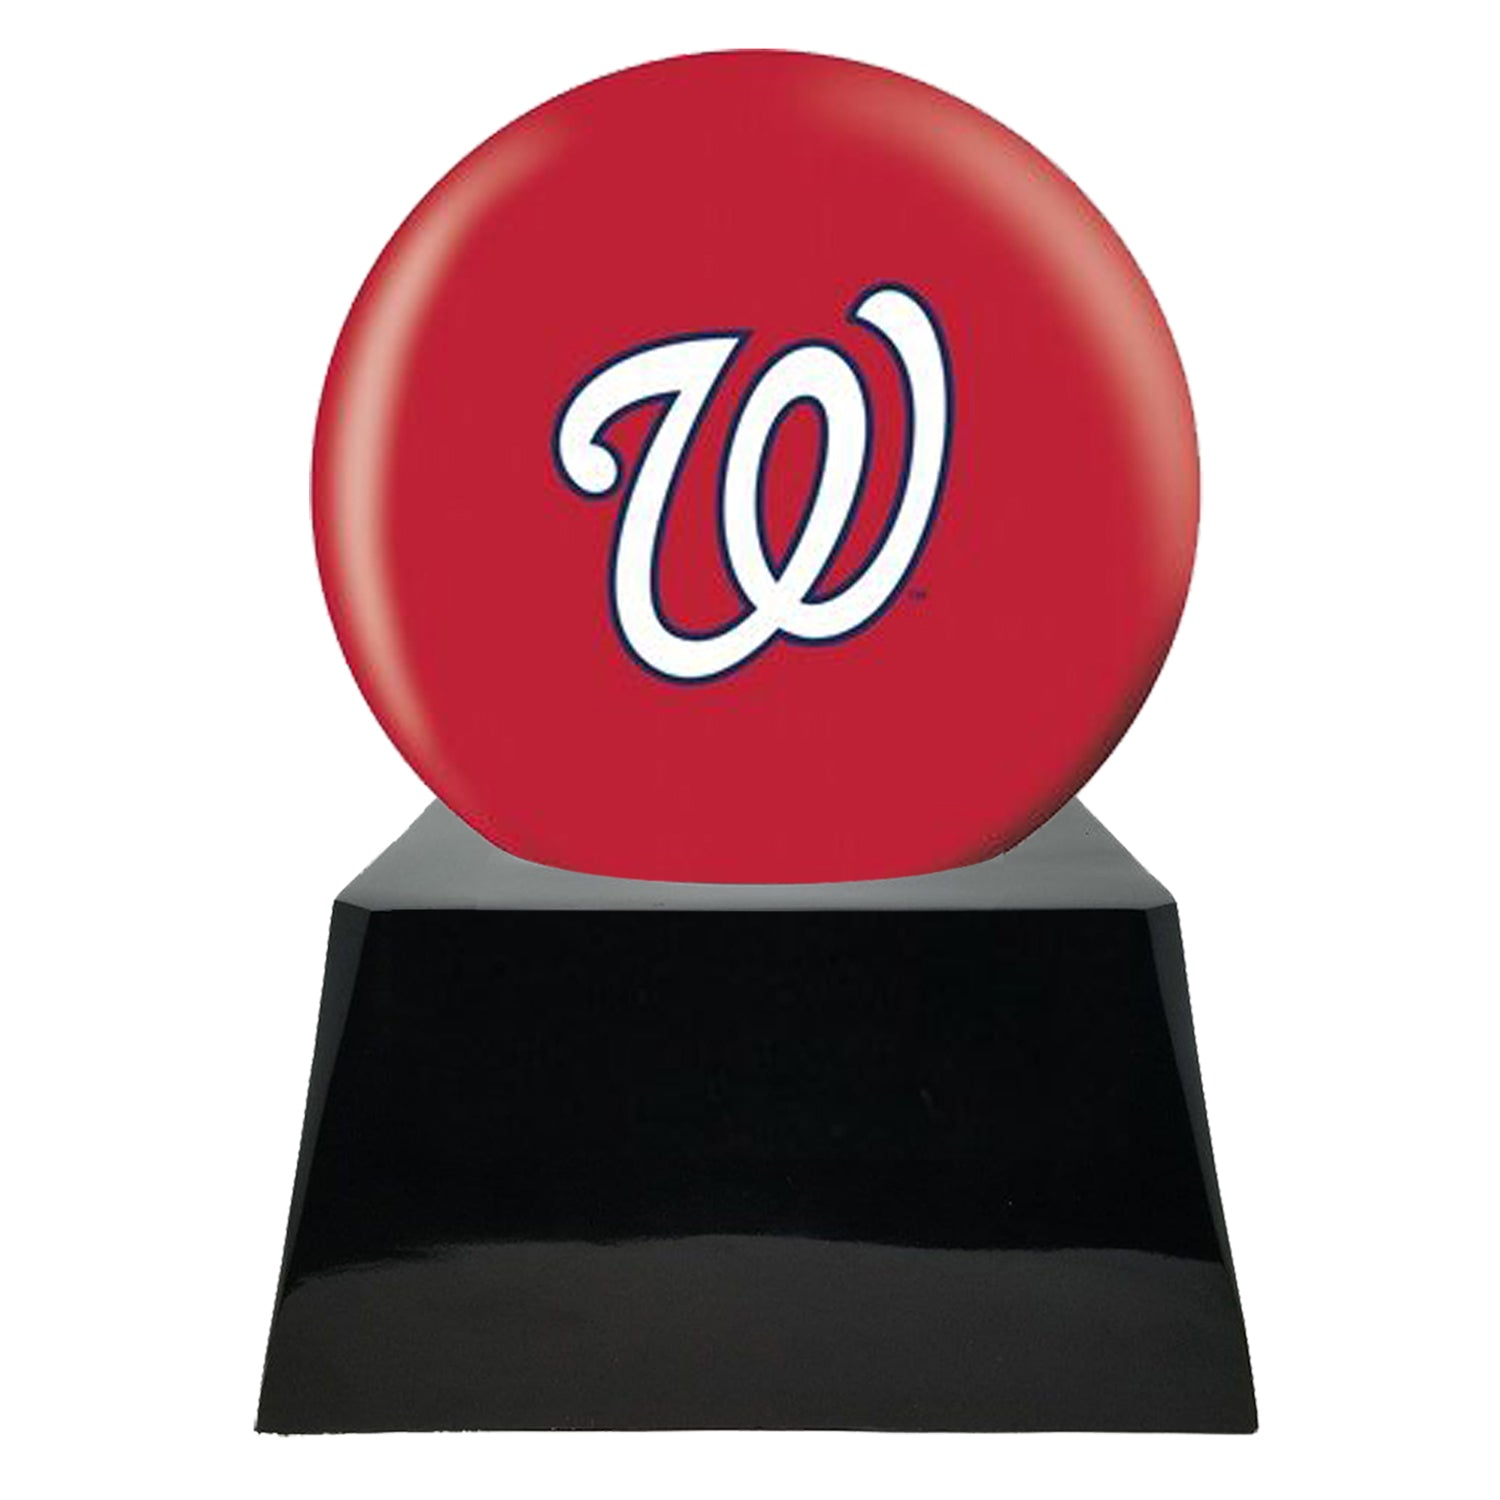 Baseball Cremation Urn with Optional Washington Nationals Ball Decor and Custom Metal Plaque, Sports Urn - Divinity Urns